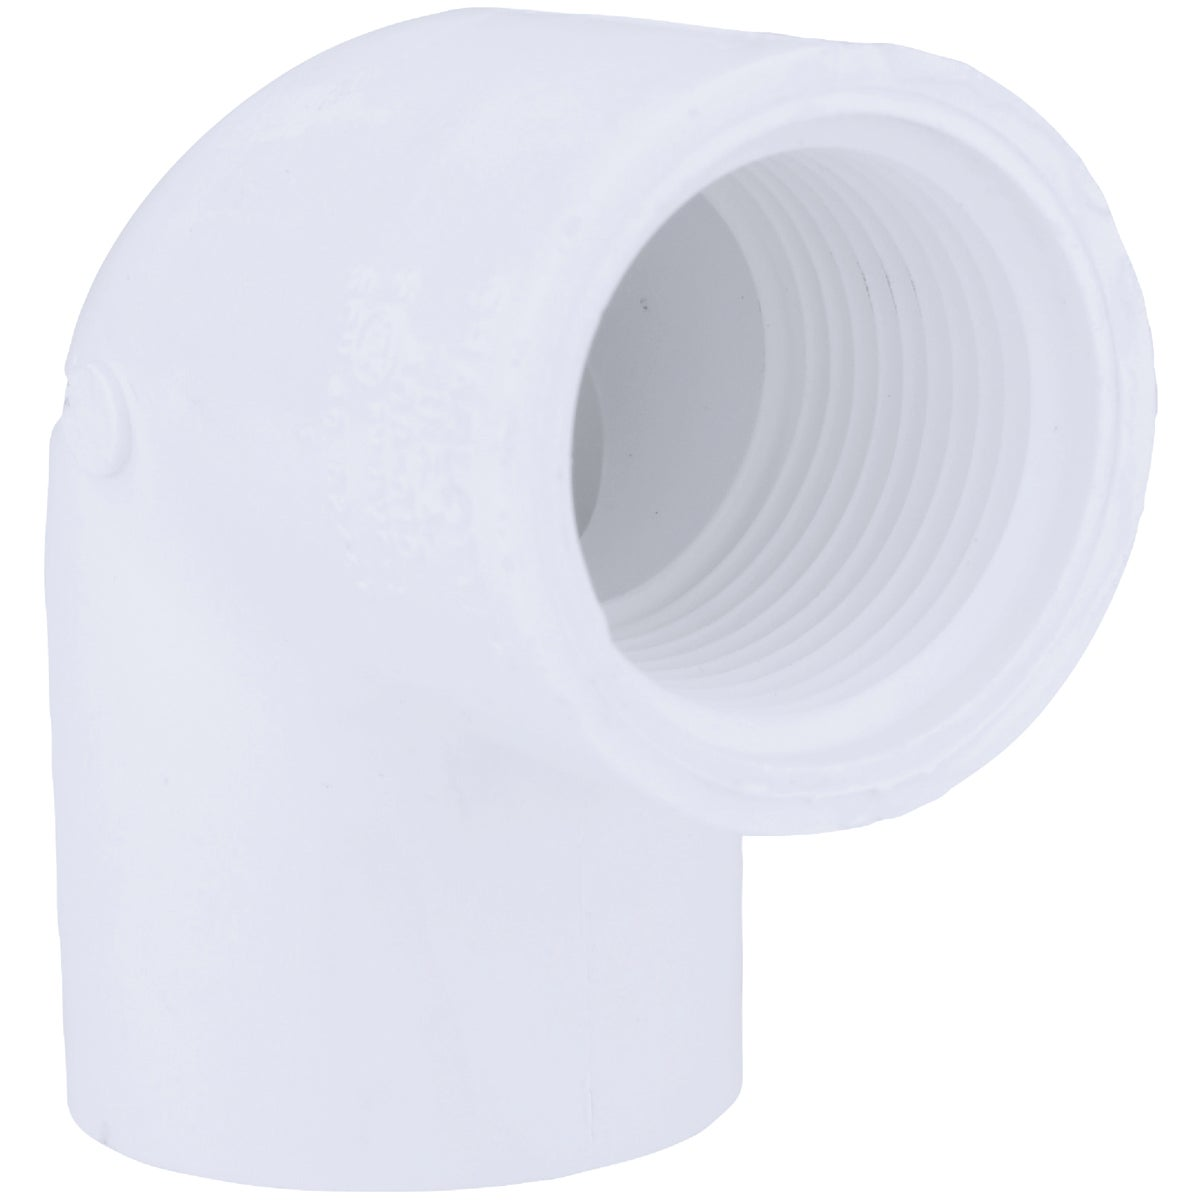 "1"" PVC FIPXFIP 90D ELBOW - 33710 by Genova Inc"